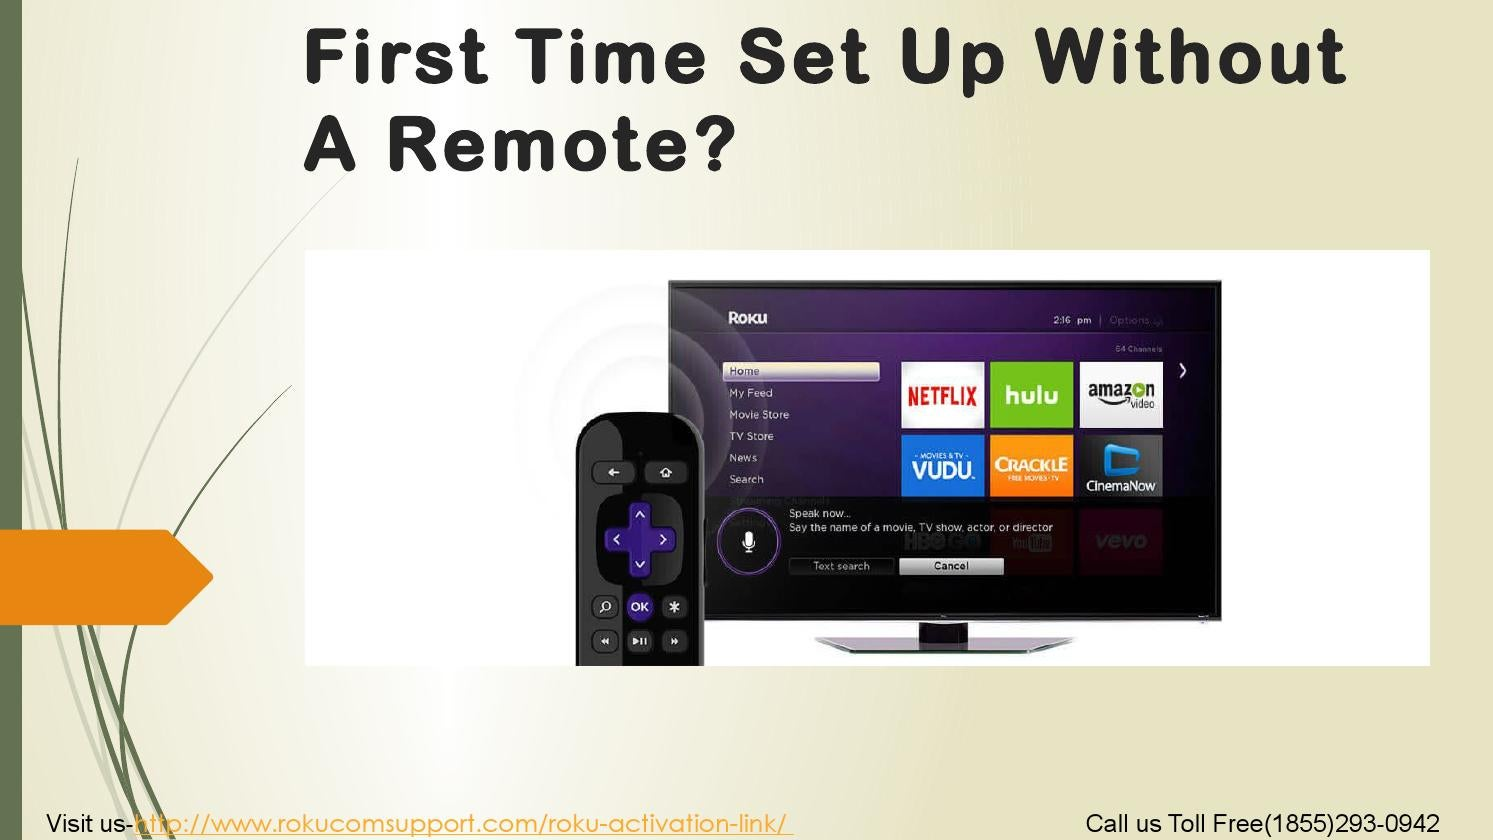 First Time Set Up Without A Remote? by Rokucom Support - issuu